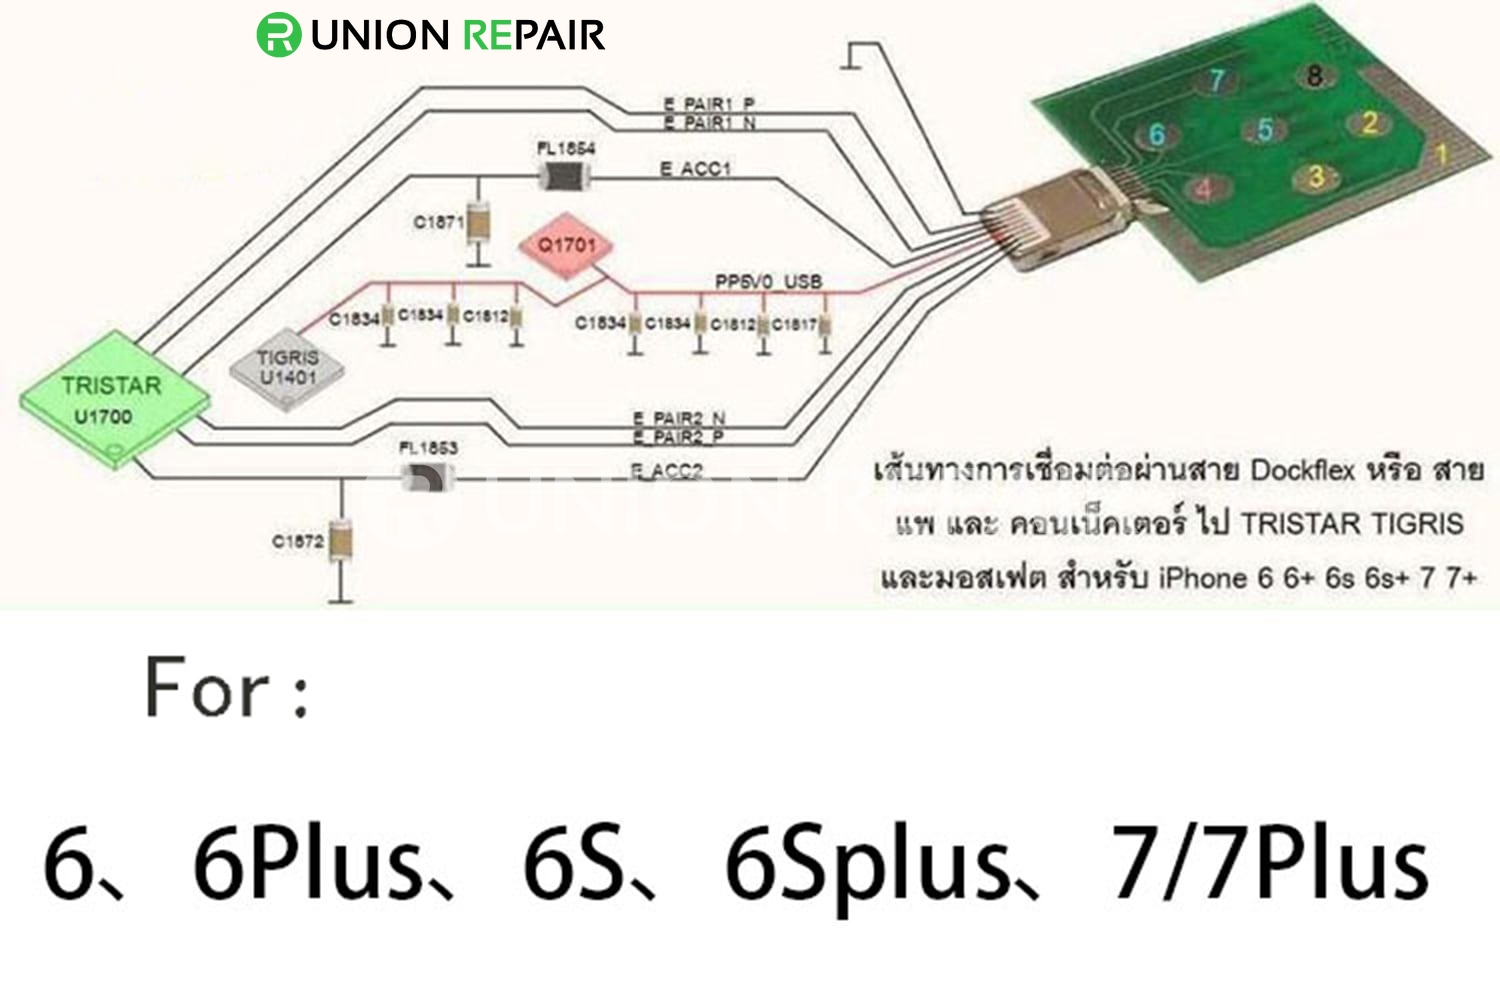 iphone plus to usb wiring diagram search for wiring diagrams u2022 wiring [ 1500 x 1000 Pixel ]